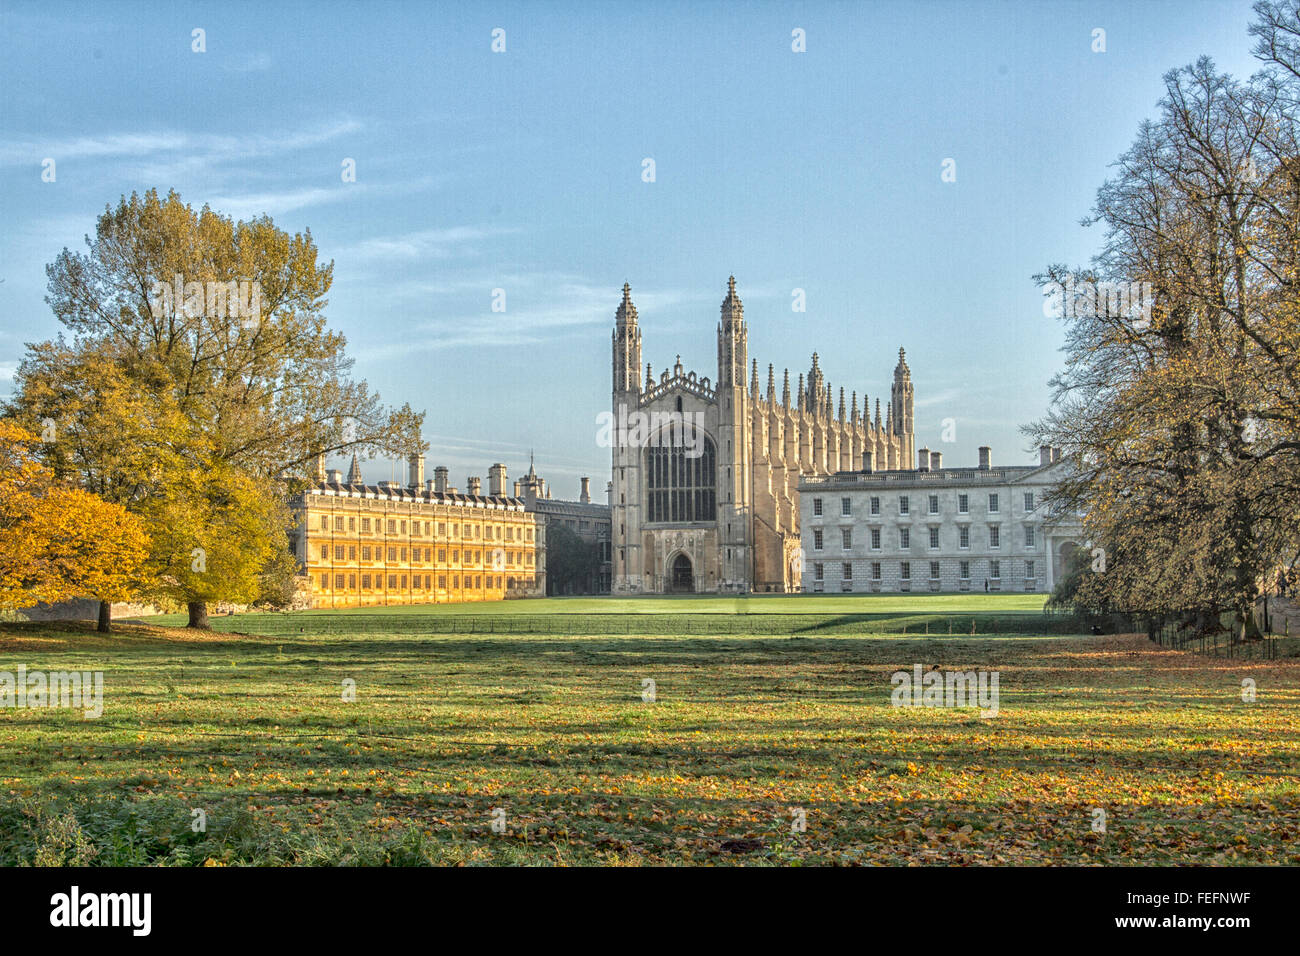 Ely Cathedral, Cambridgeshire - Stock Image